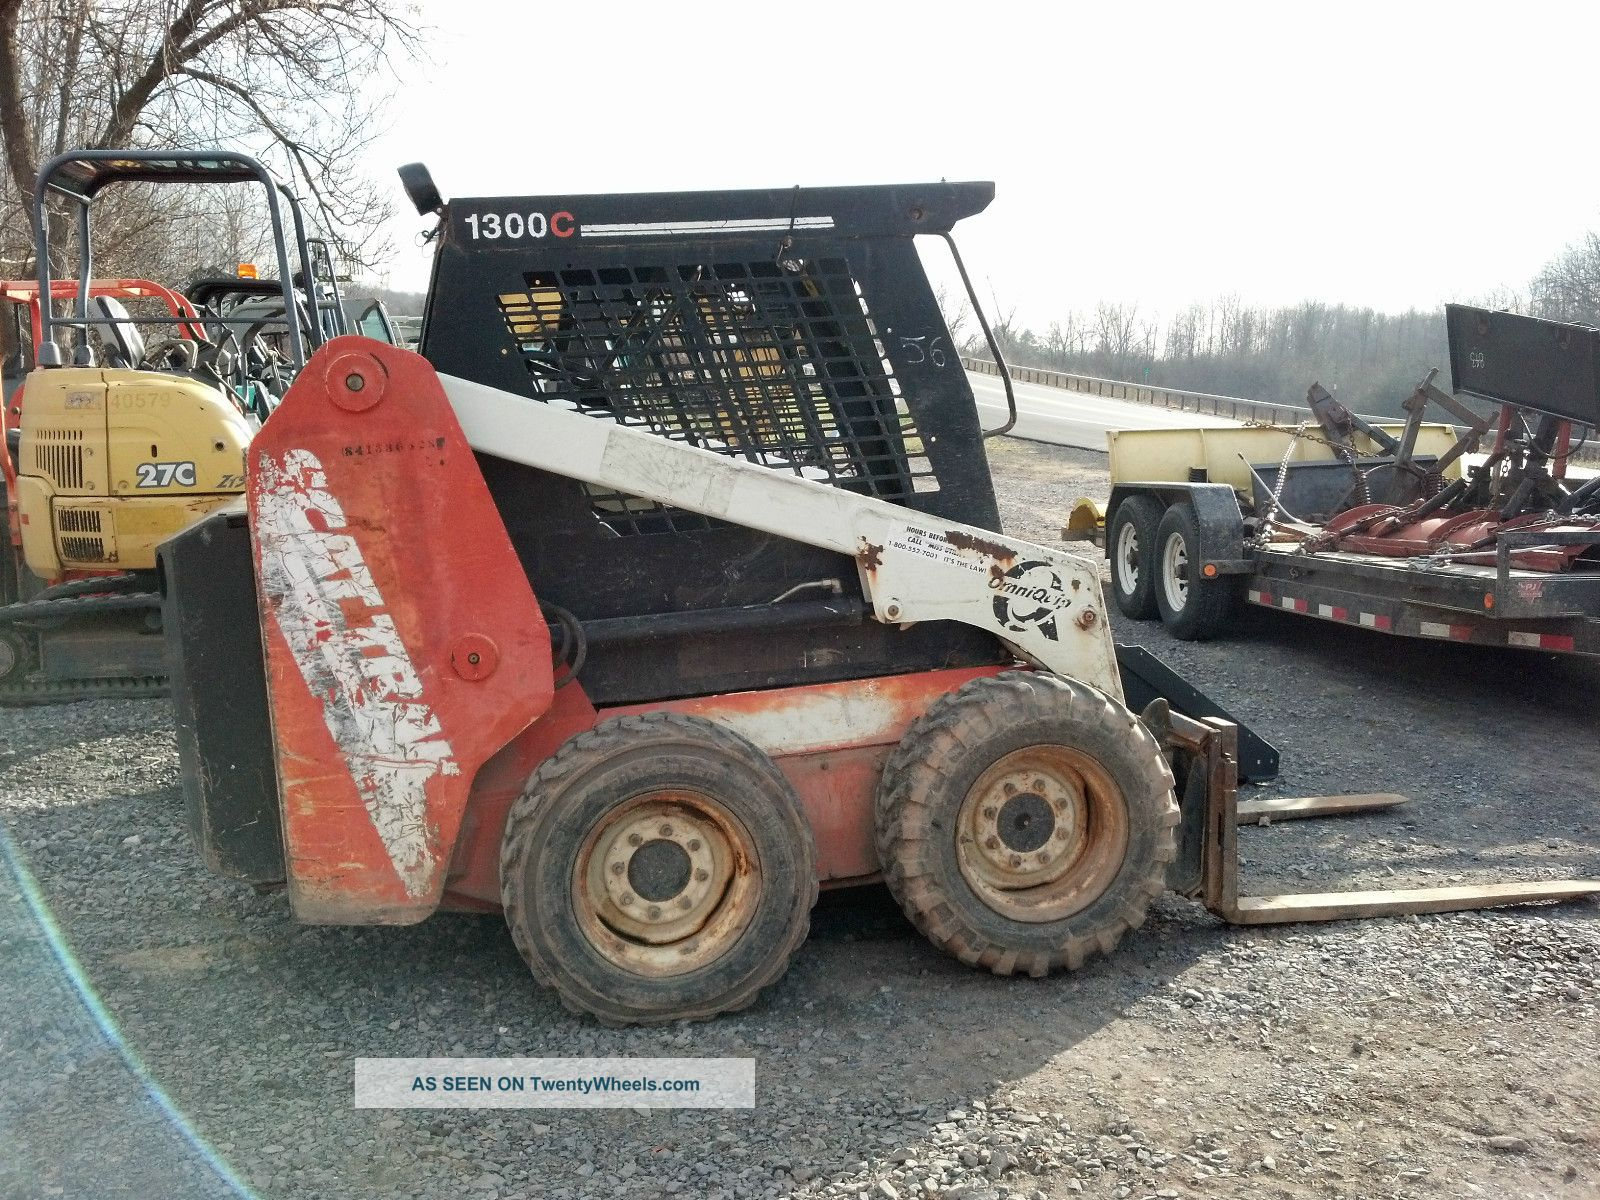 2000 Scat Track 1300 C Skidsteer Skid Steer Loader Bobcat Forks Perkins Diesel Skid Steer Loaders photo